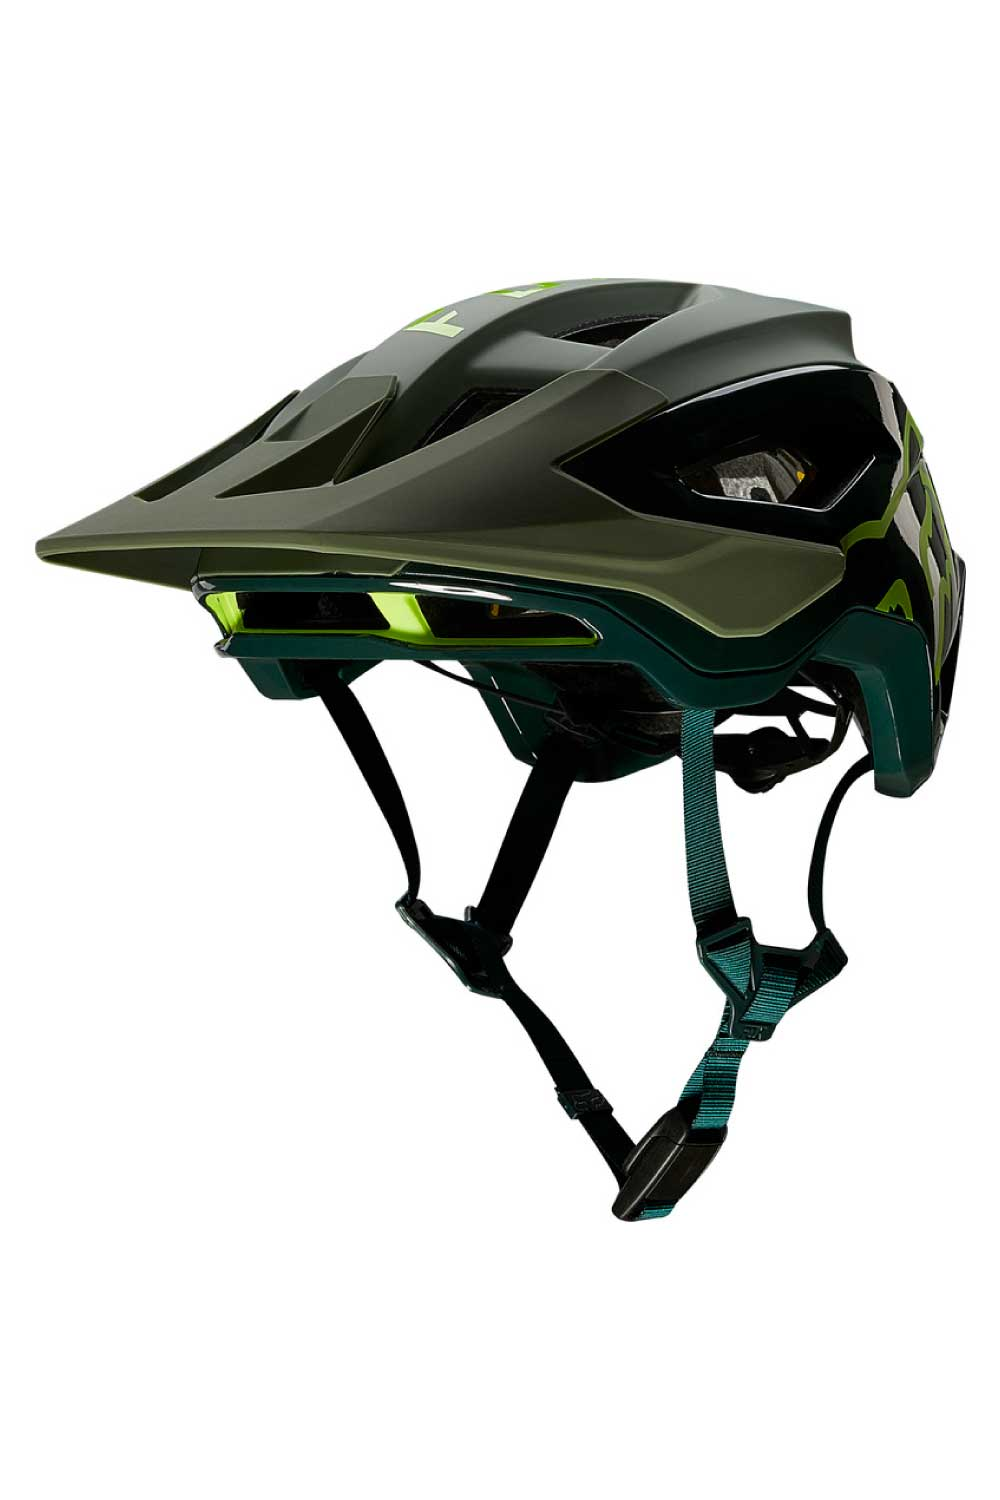 FOX Racing 2021 Speedframe Men's Pro MTB Helmet